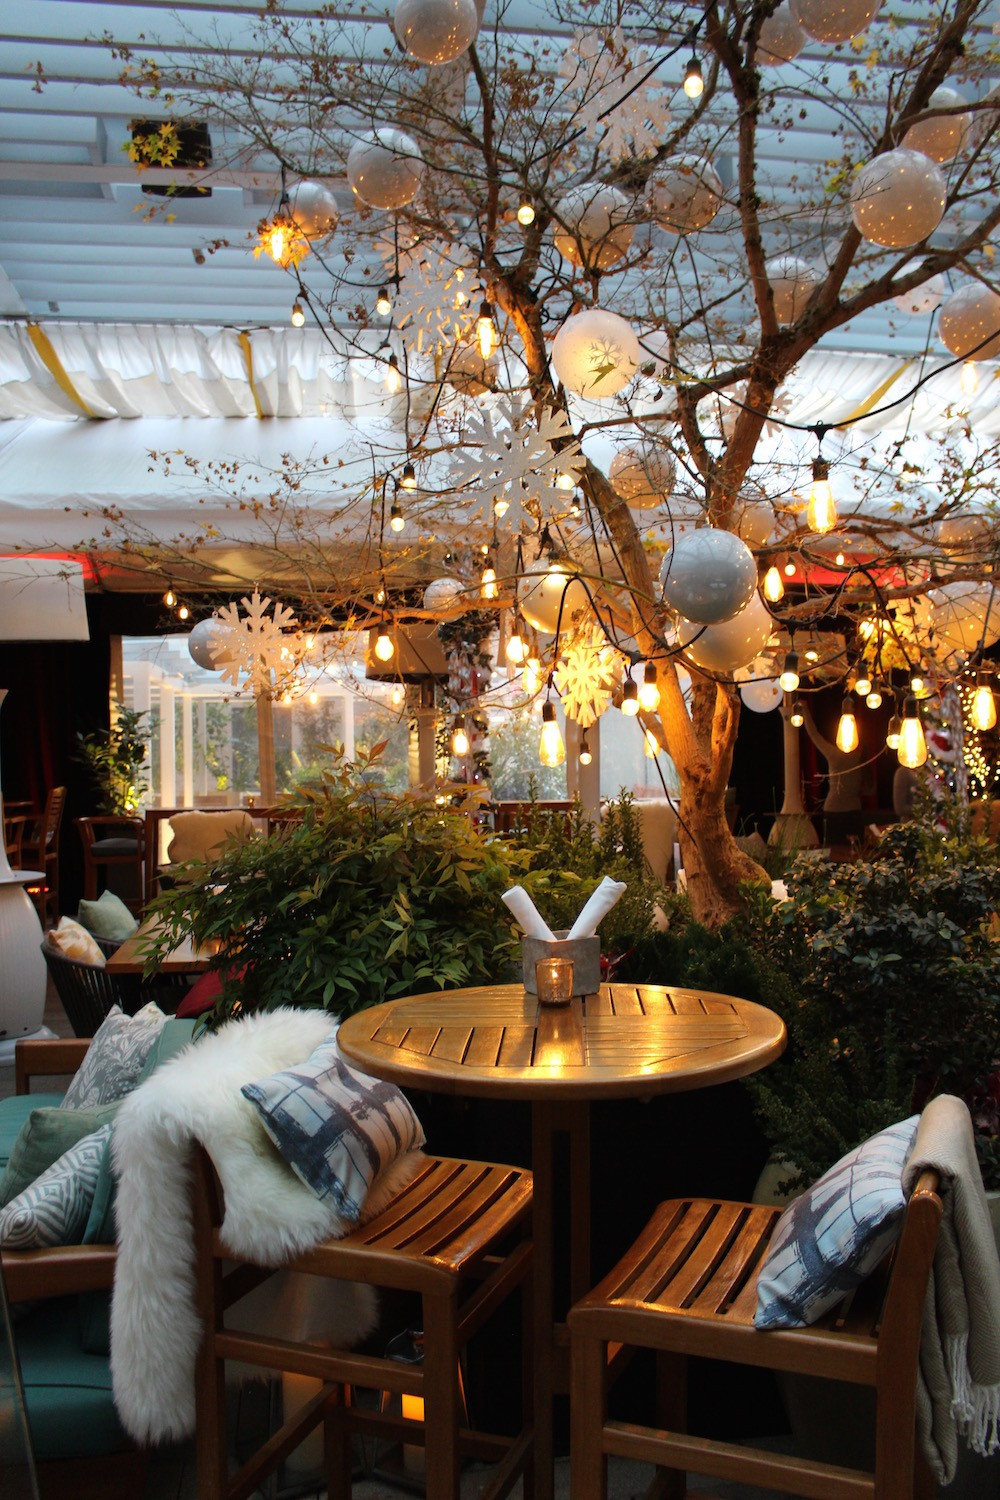 Reflections Cozy Winter Wonderland Patio Opens This Week